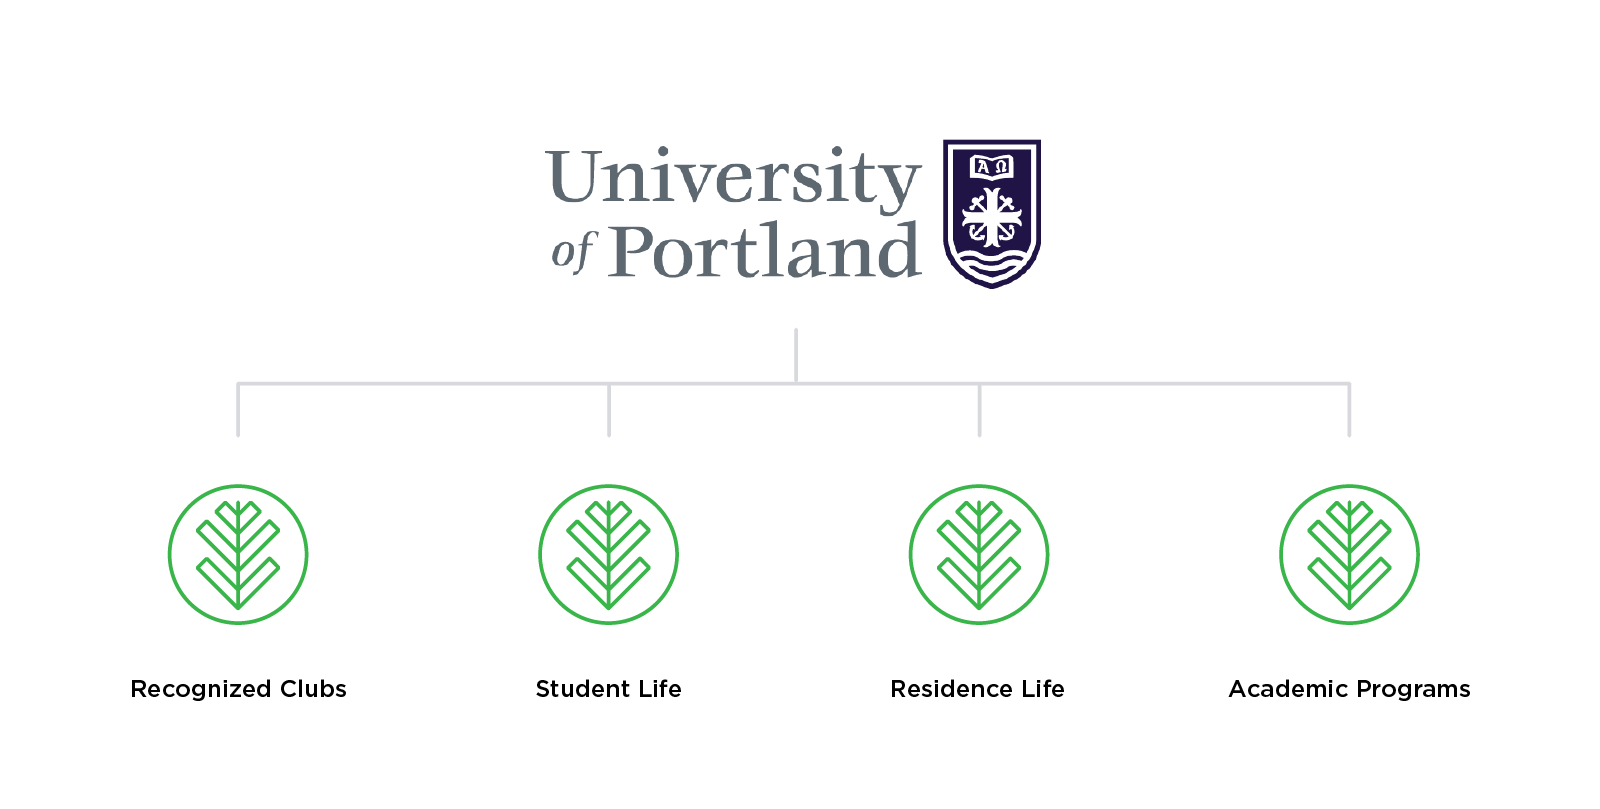 University of Portland's student engagement platform